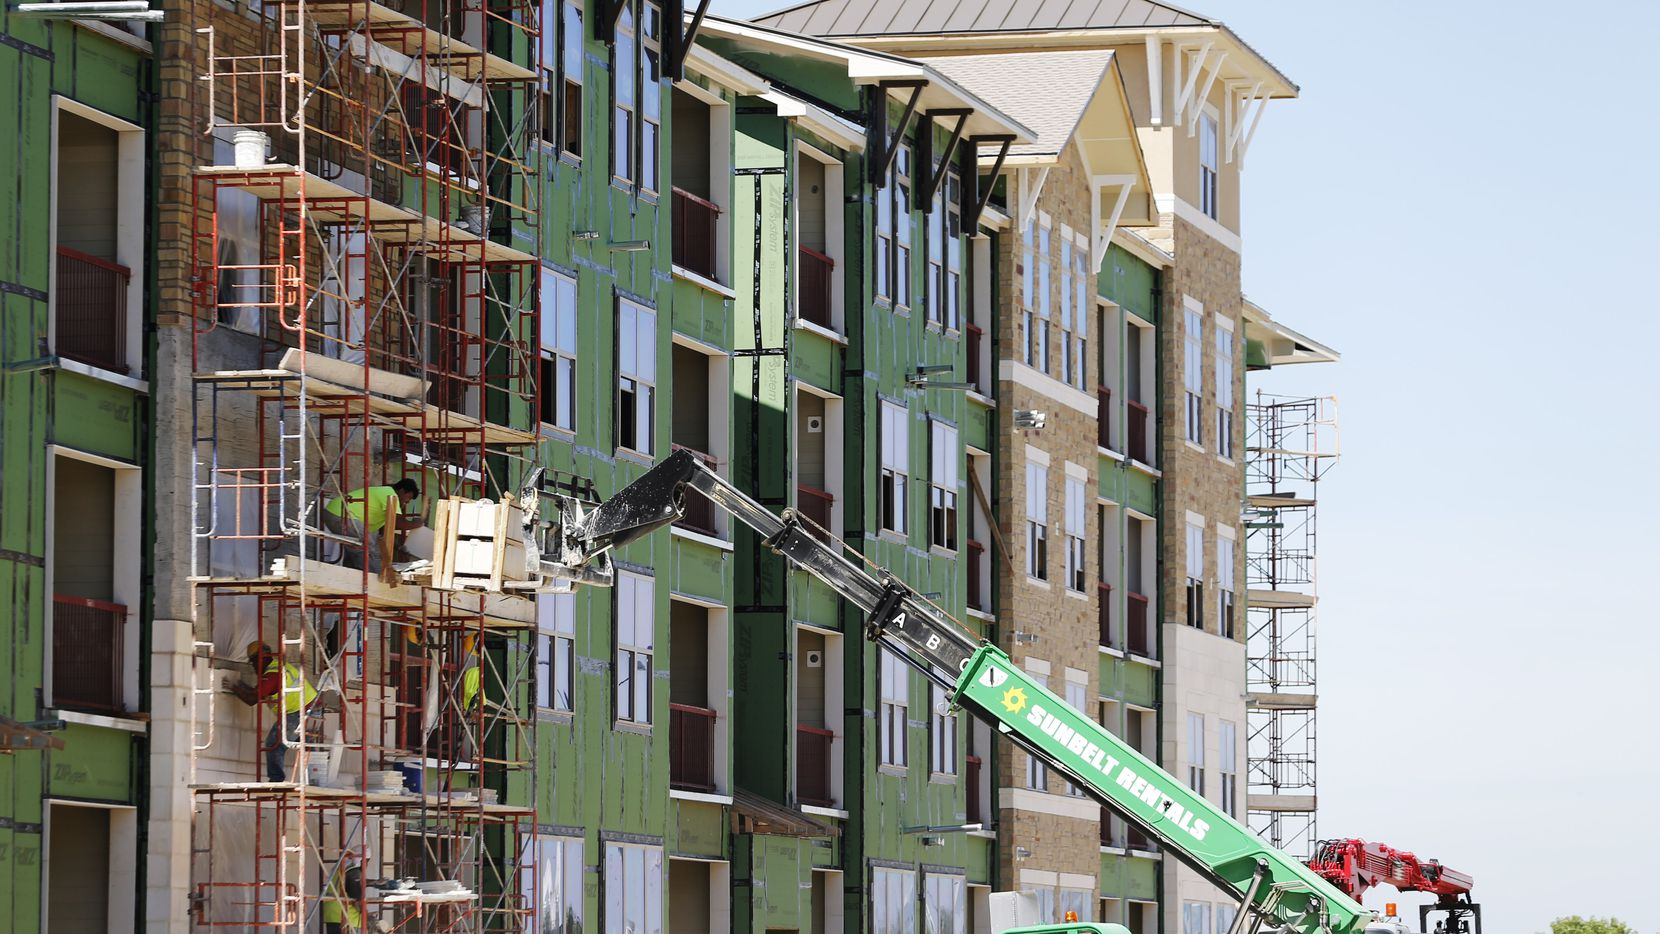 More than 50,000 apartments are under construction in the Dallas-Forth area.